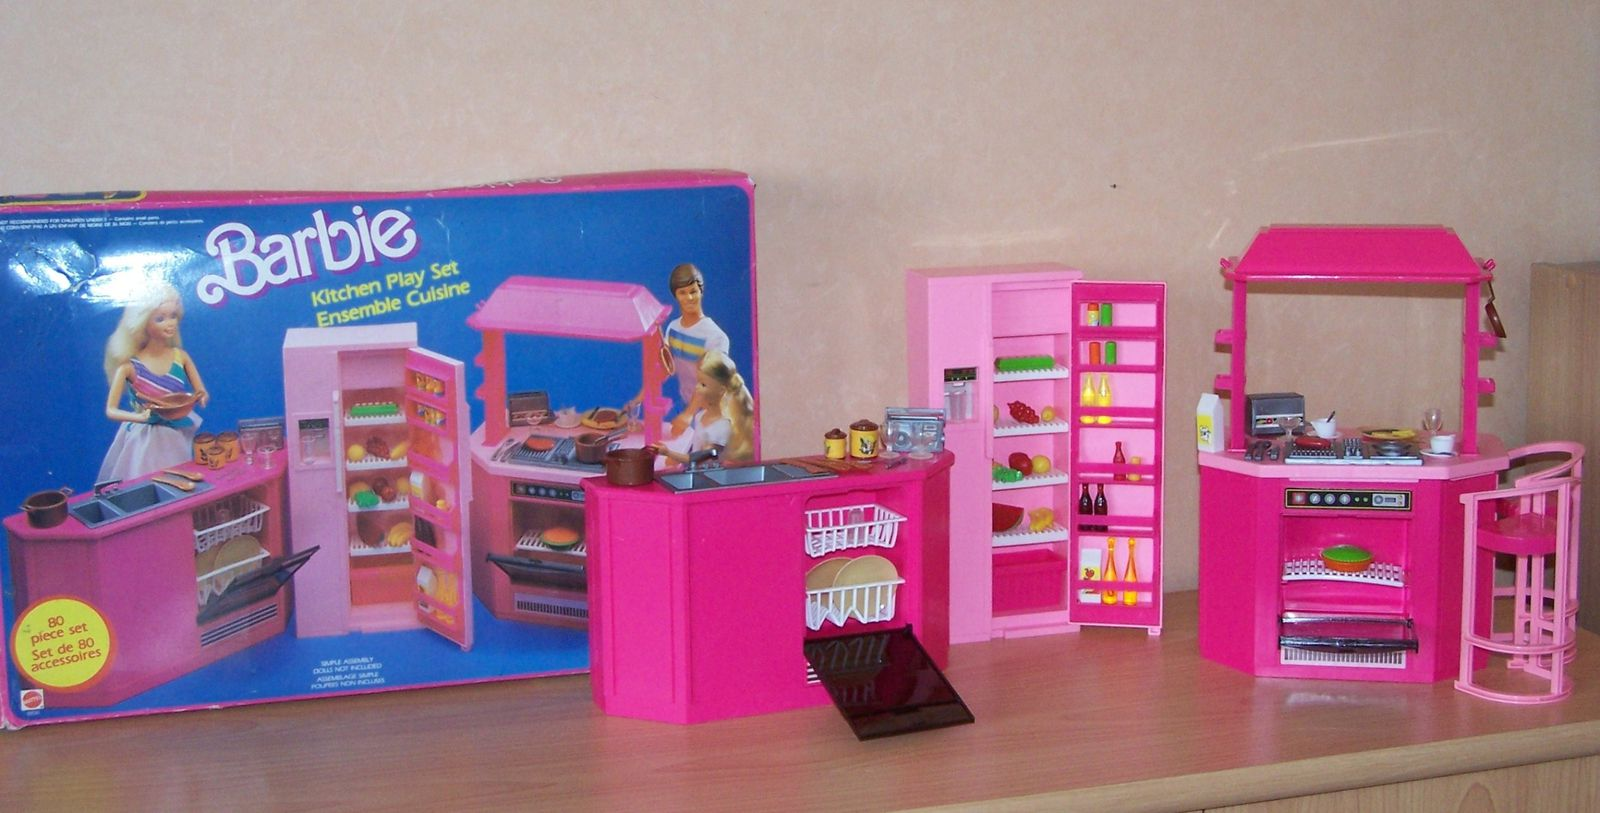 barbie mattel playsets et mobilier les p 39 tits tr sors de nhtpirate. Black Bedroom Furniture Sets. Home Design Ideas